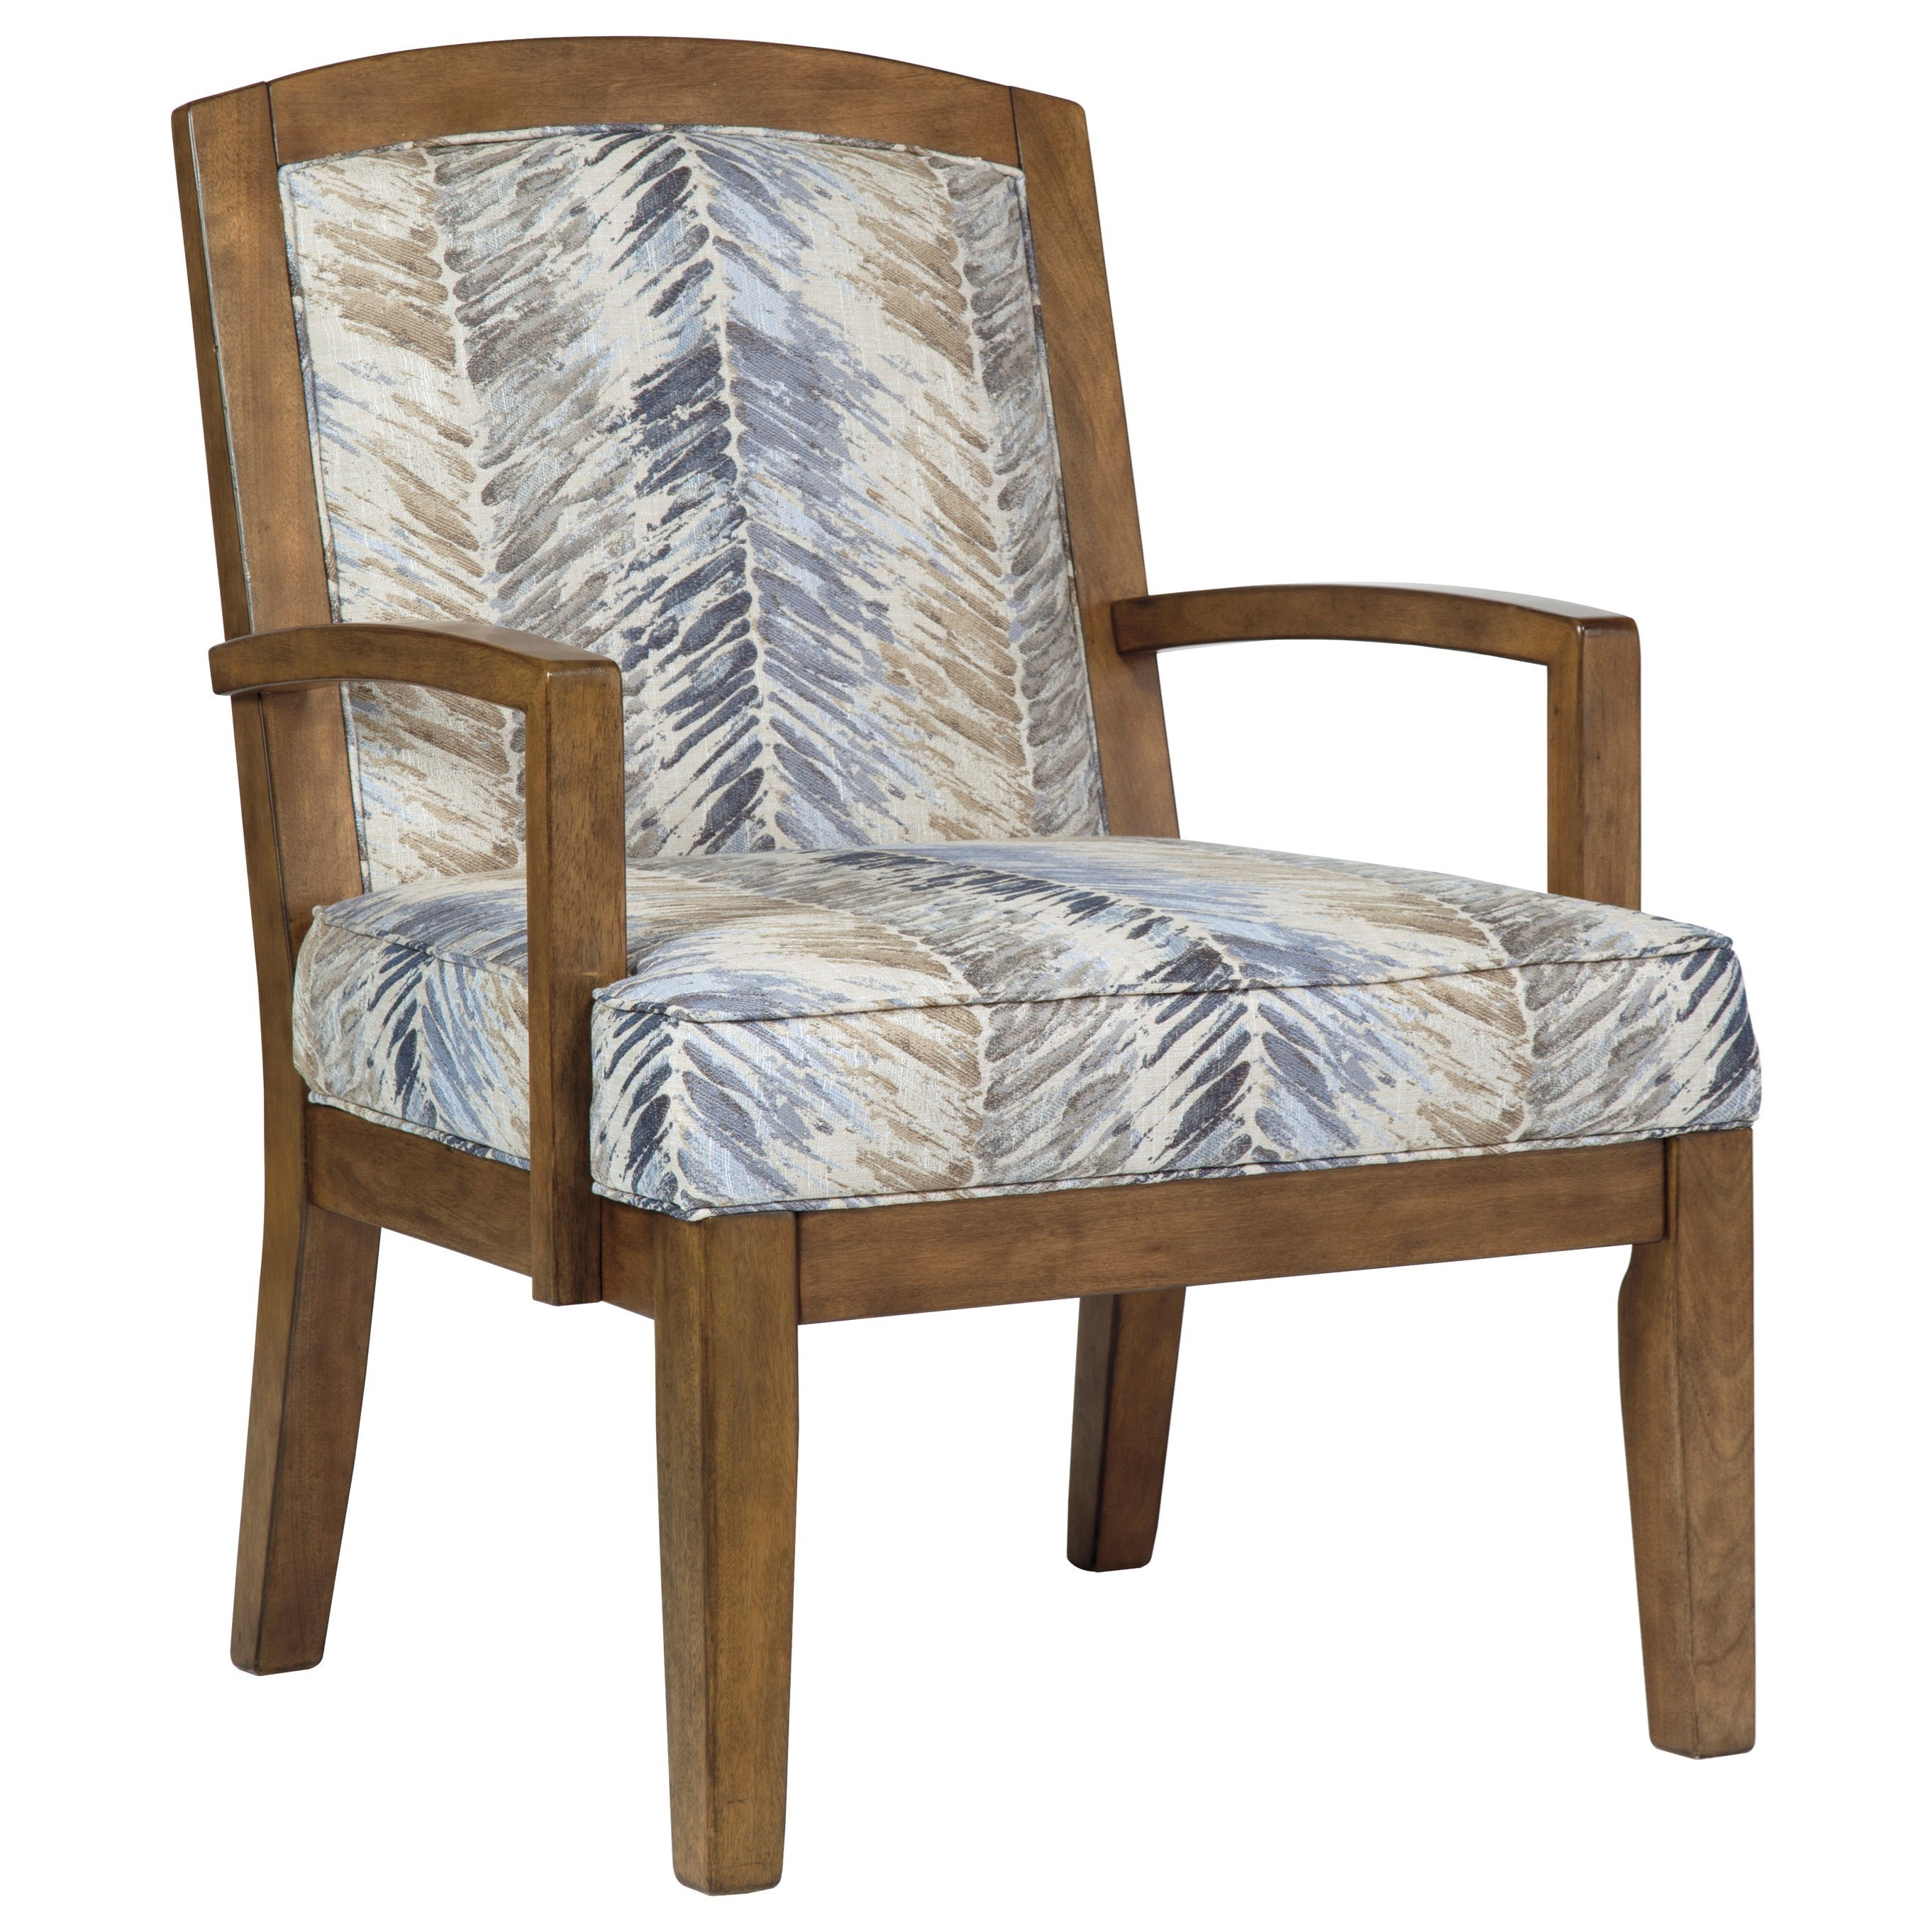 contemporary wood frame accent chair - Wood Frame Accent Chairs